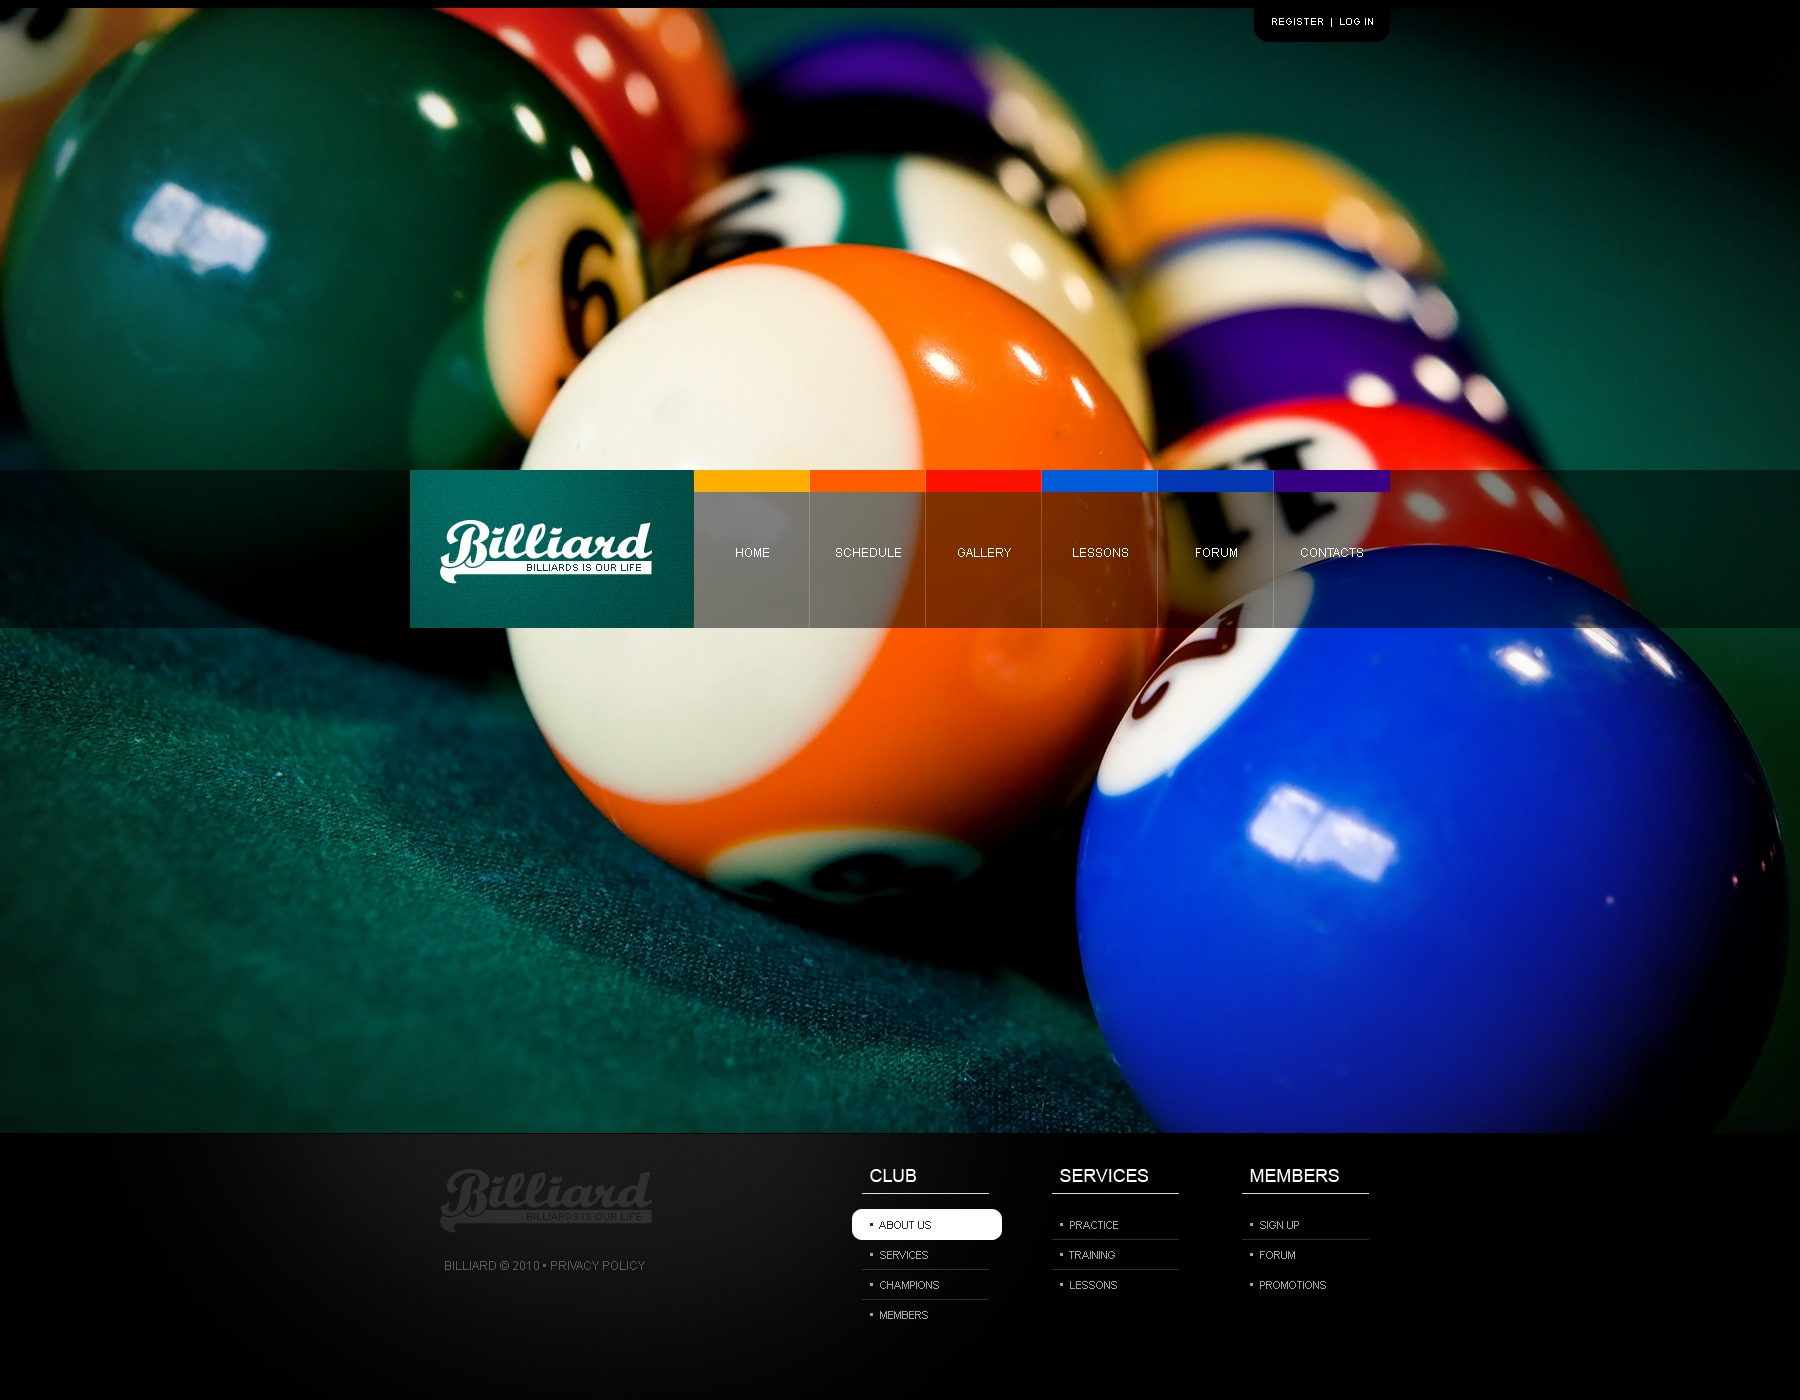 The Billiard Club PSD Design 54403, one of the best PSD templates of its kind (sport, wide), also known as billiard club PSD template, sport PSD template, entertainment PSD template, site PSD template, cup-final PSD template, champions PSD template, membership PSD template, leadership PSD template, team PSD template, ball PSD template, cue PSD template, pocket PSD template, positions PSD template, cloth PSD template, lamps PSD template, table PSD template, pool PSD template, tables PSD template, accessories PSD template, furniture PSD template, books PSD template, videos PSD template, coaching PSD template, teacher PSD template, principles and related with billiard club, sport, entertainment, site, cup-final, champions, membership, leadership, team, ball, cue, pocket, positions, cloth, lamps, table, pool, tables, accessories, furniture, books, videos, coaching, teacher, principles, etc.